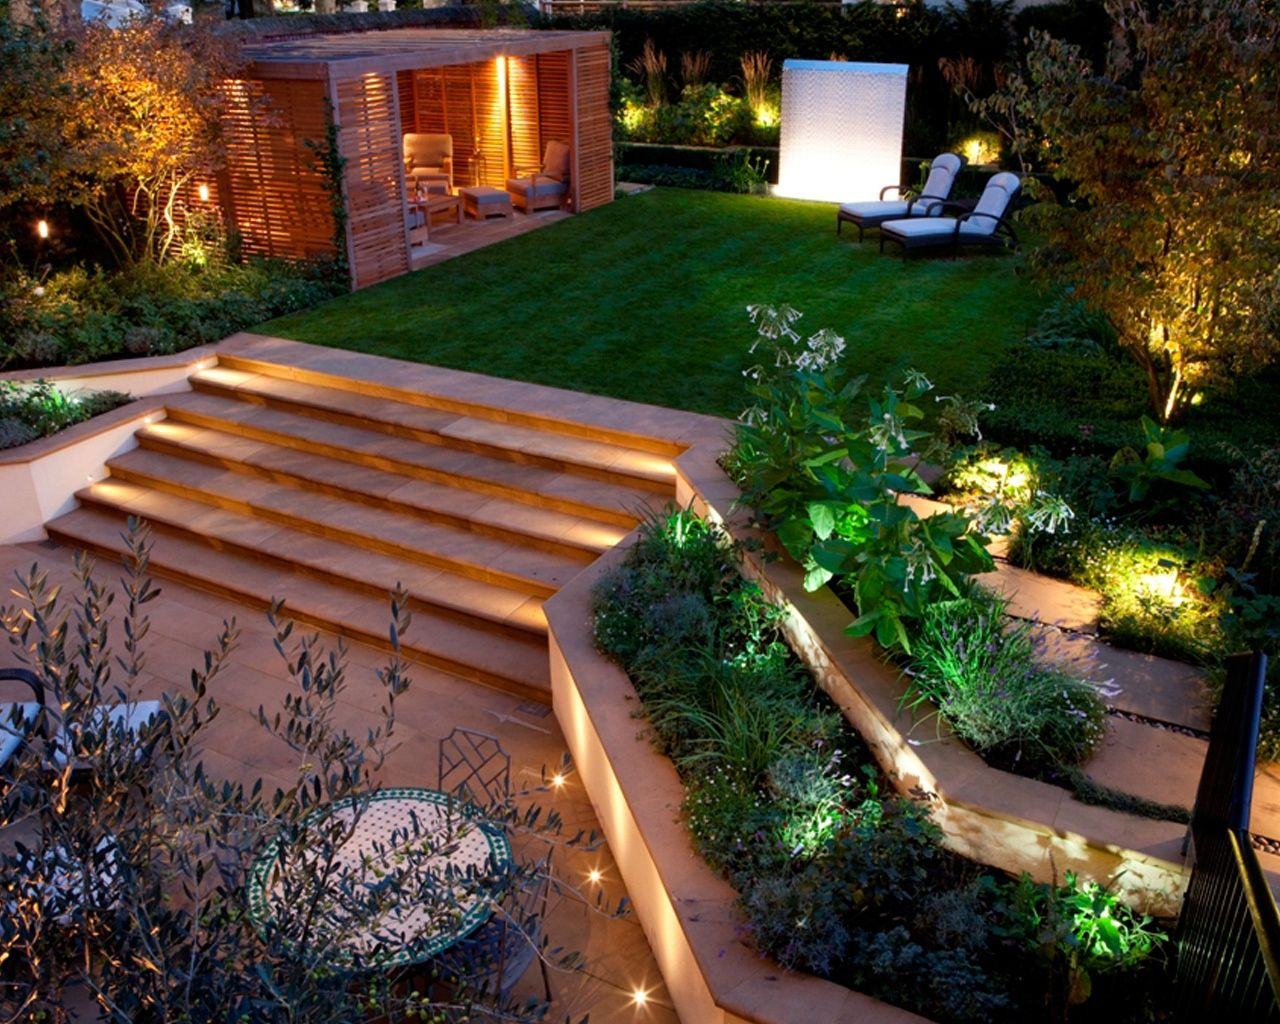 Garden Design Decking Ideas best 25+ garden design ideas only on pinterest | landscape design